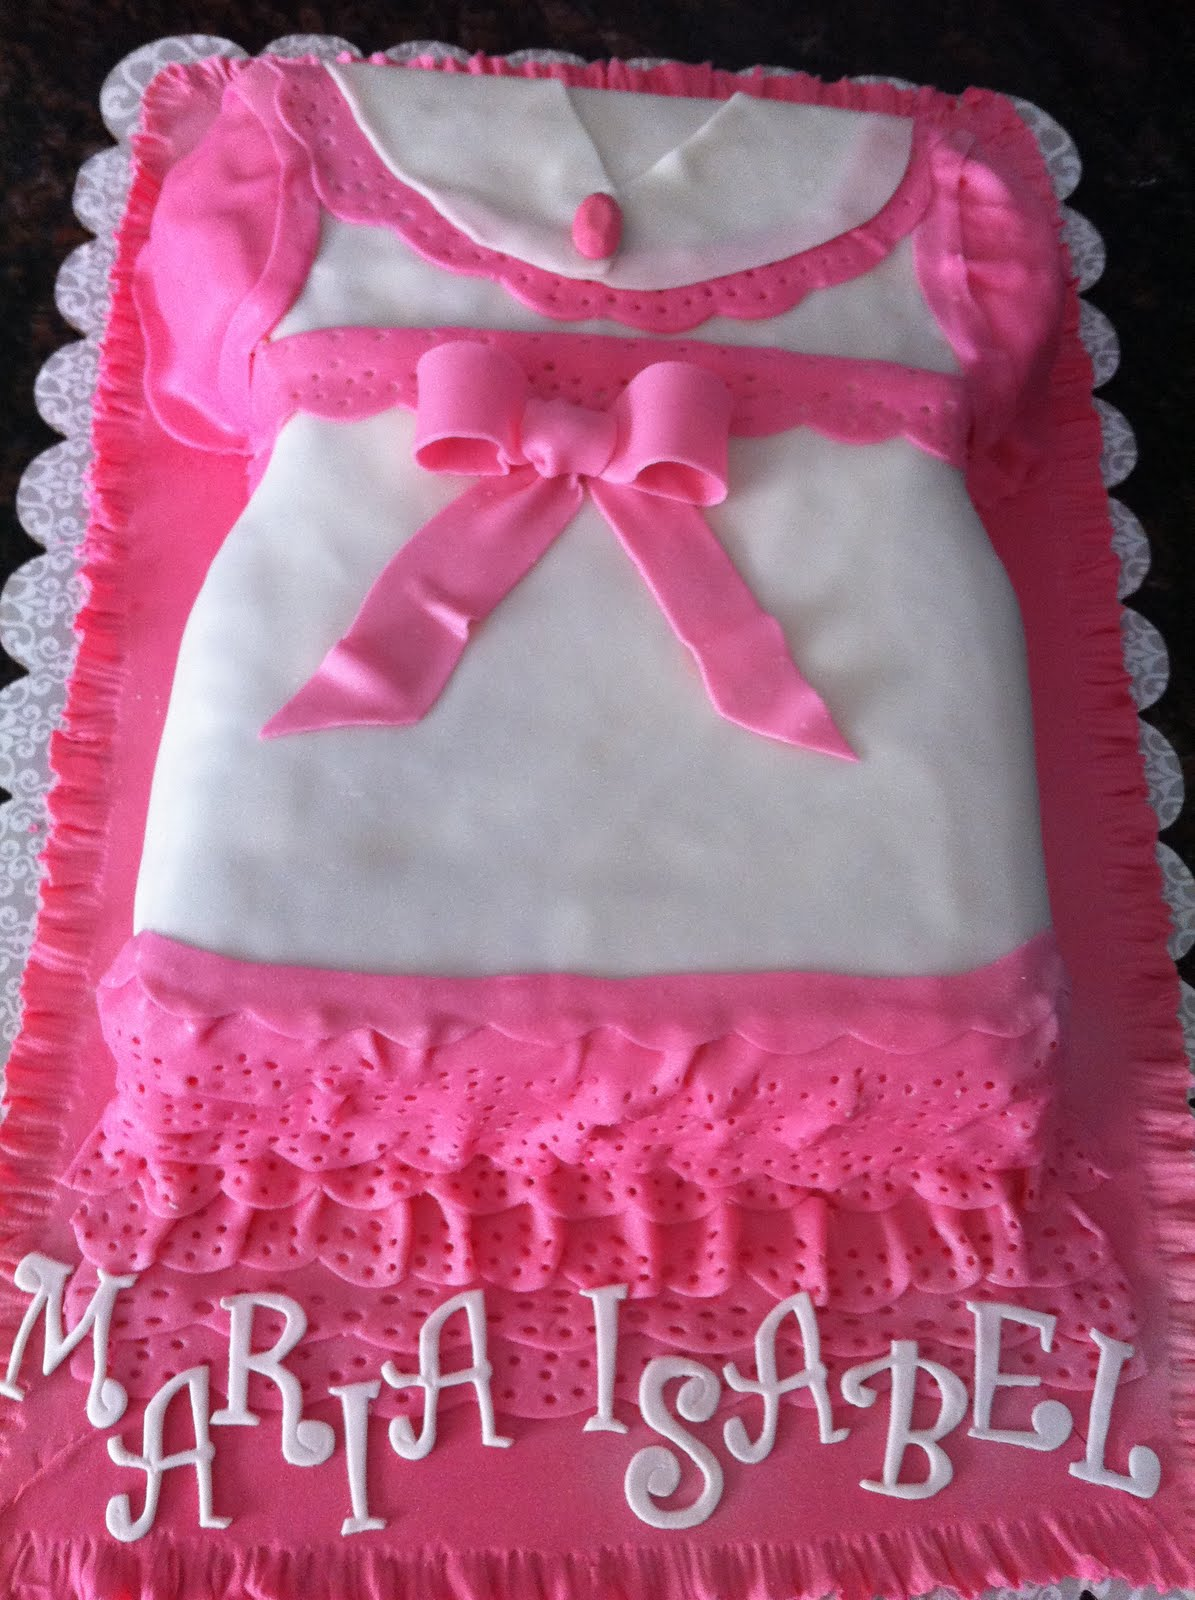 Christening Baby Girl Dress Cake My Sweet Zepol